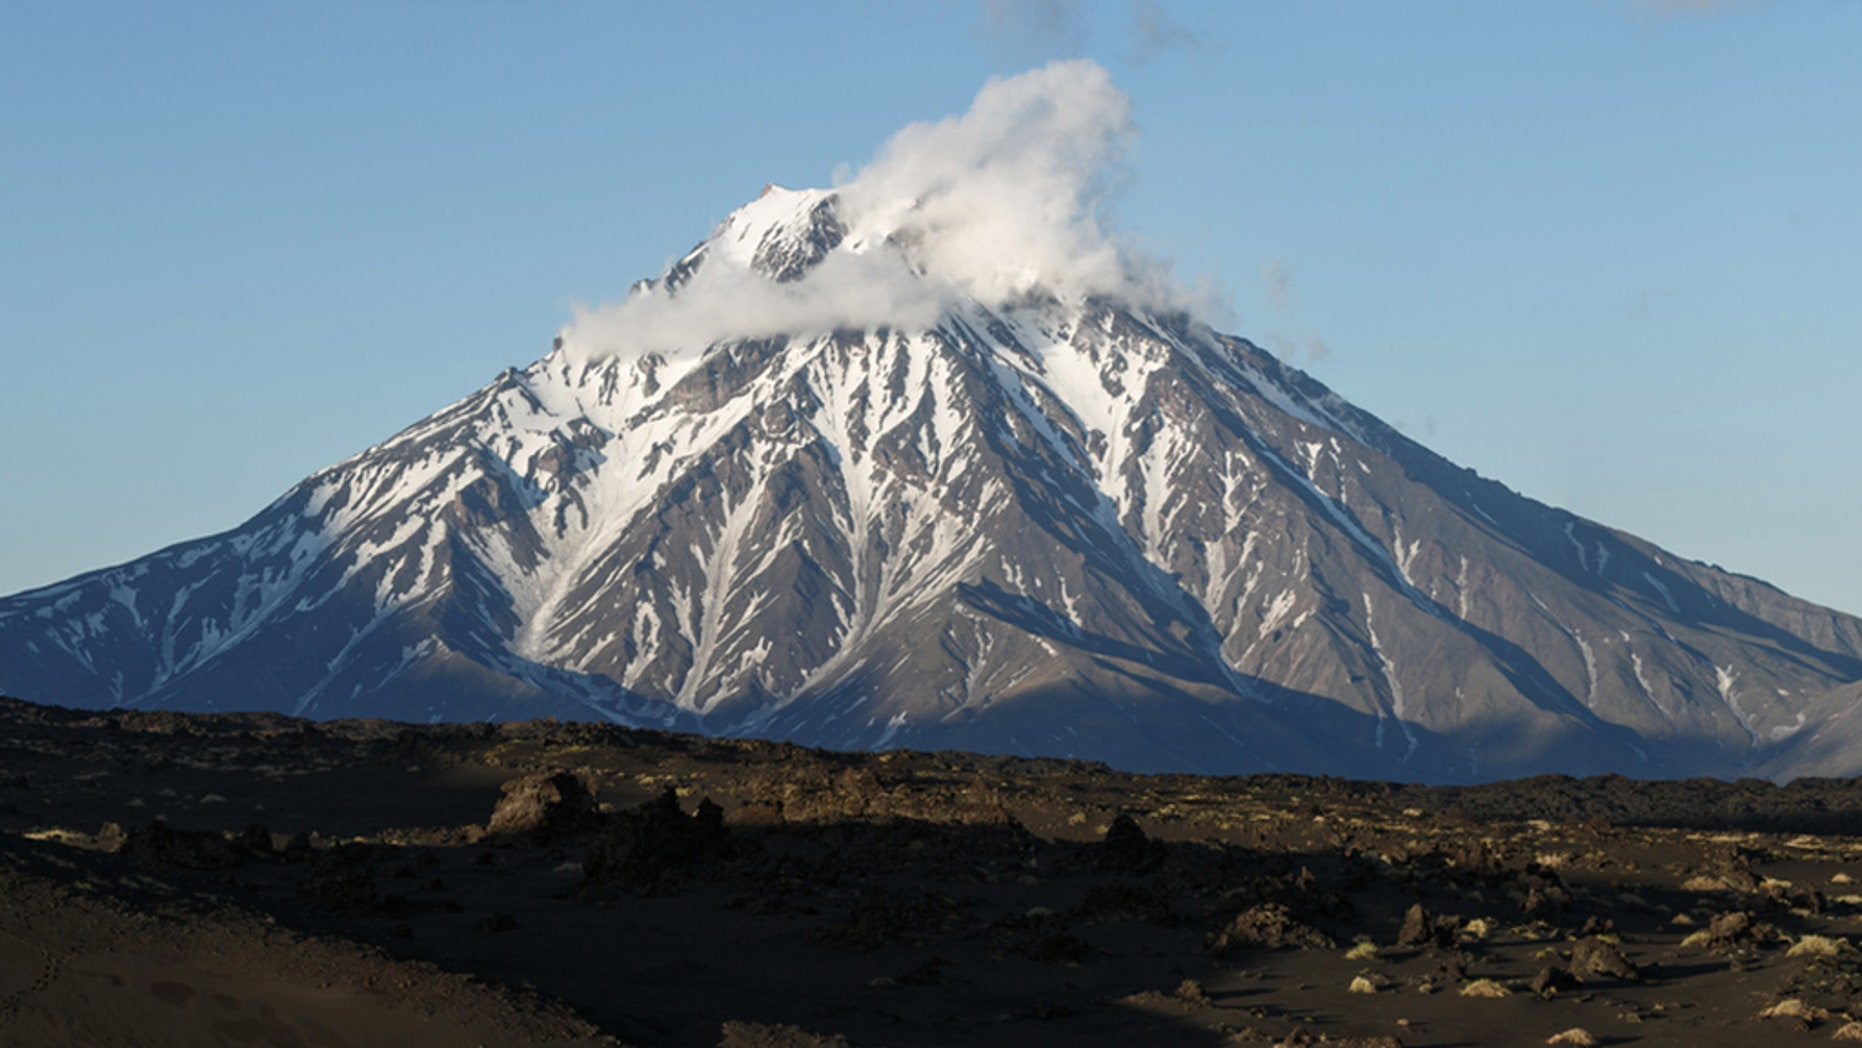 The Bolshaya Udina volcano in Kamchatka Peninsula Russia. Scientists say the volcano, previously classified as extinct could be waking up due to increased seismic activity below it.